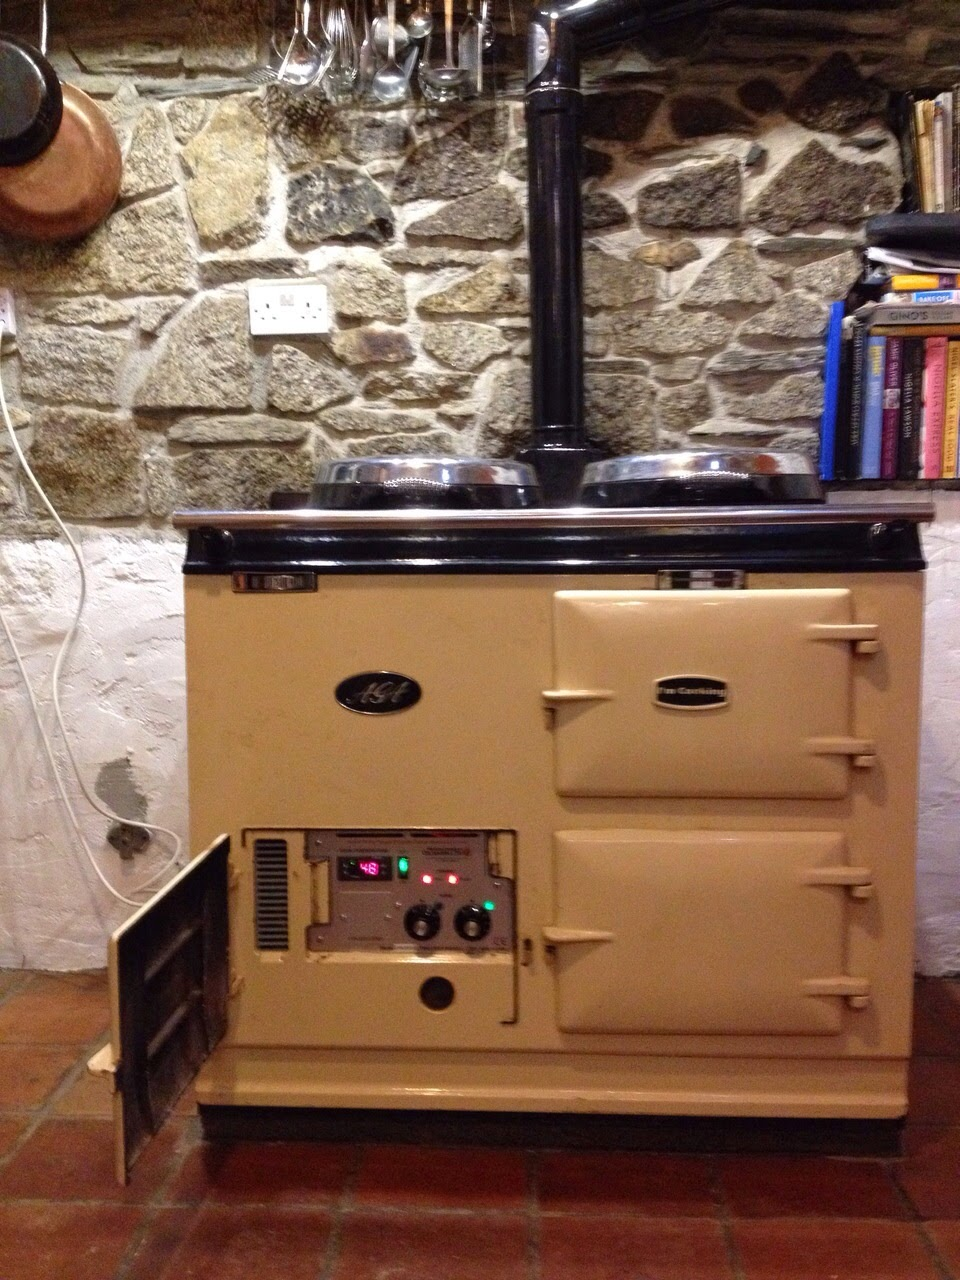 Our latest member to the electric AGA family is based in the town of Callington in South East Cornwall. Knowing the benefits the reduced heating times bring, the guys were keen to get their AGA converted in time for the hectic Christmas period.